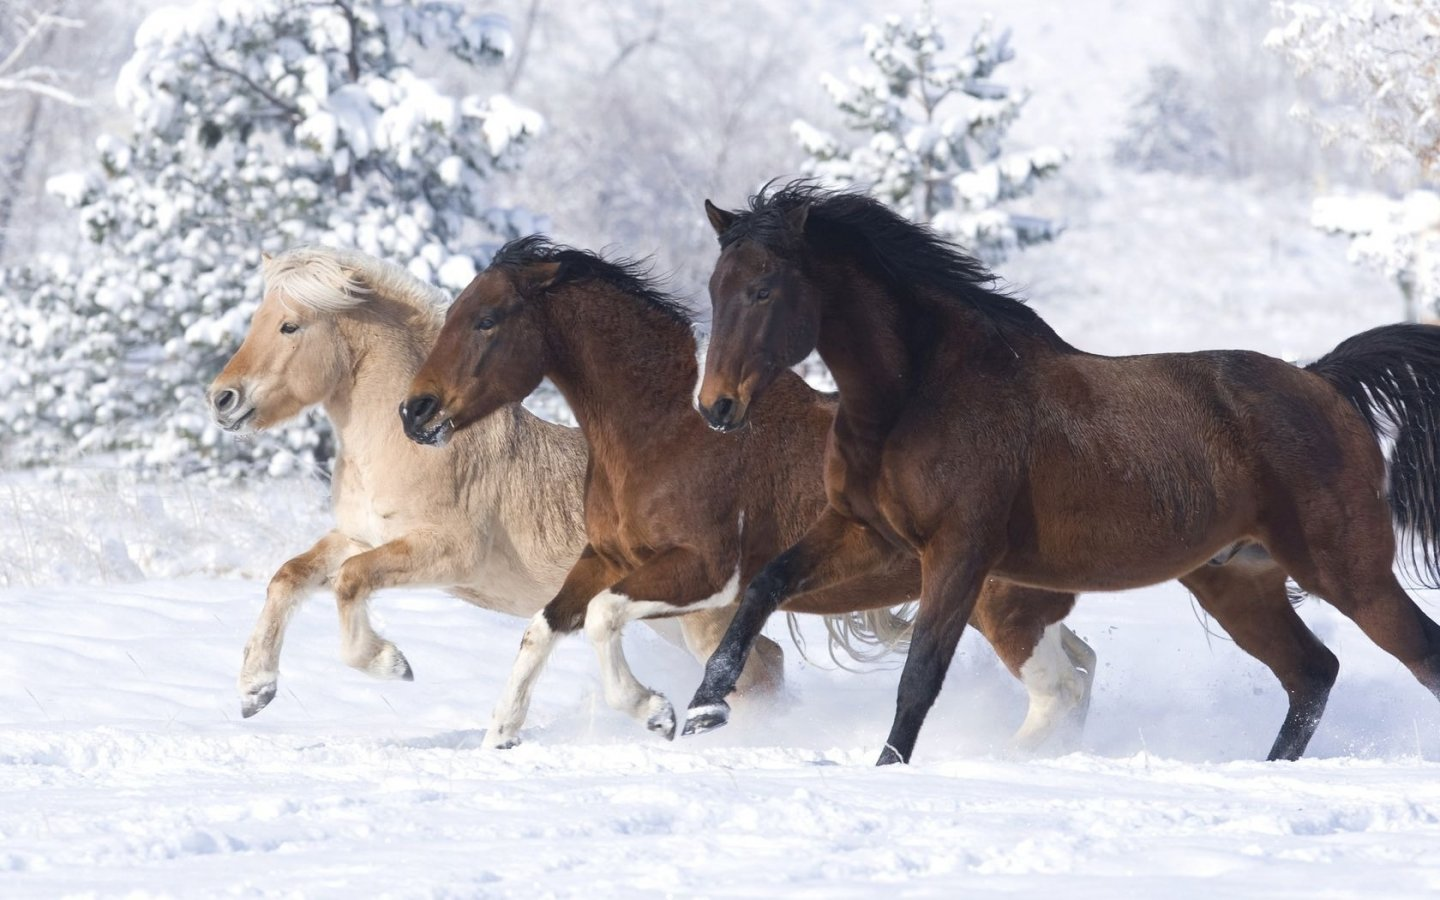 download wallpaper of horses which is under the horse wallpapers 1440x900